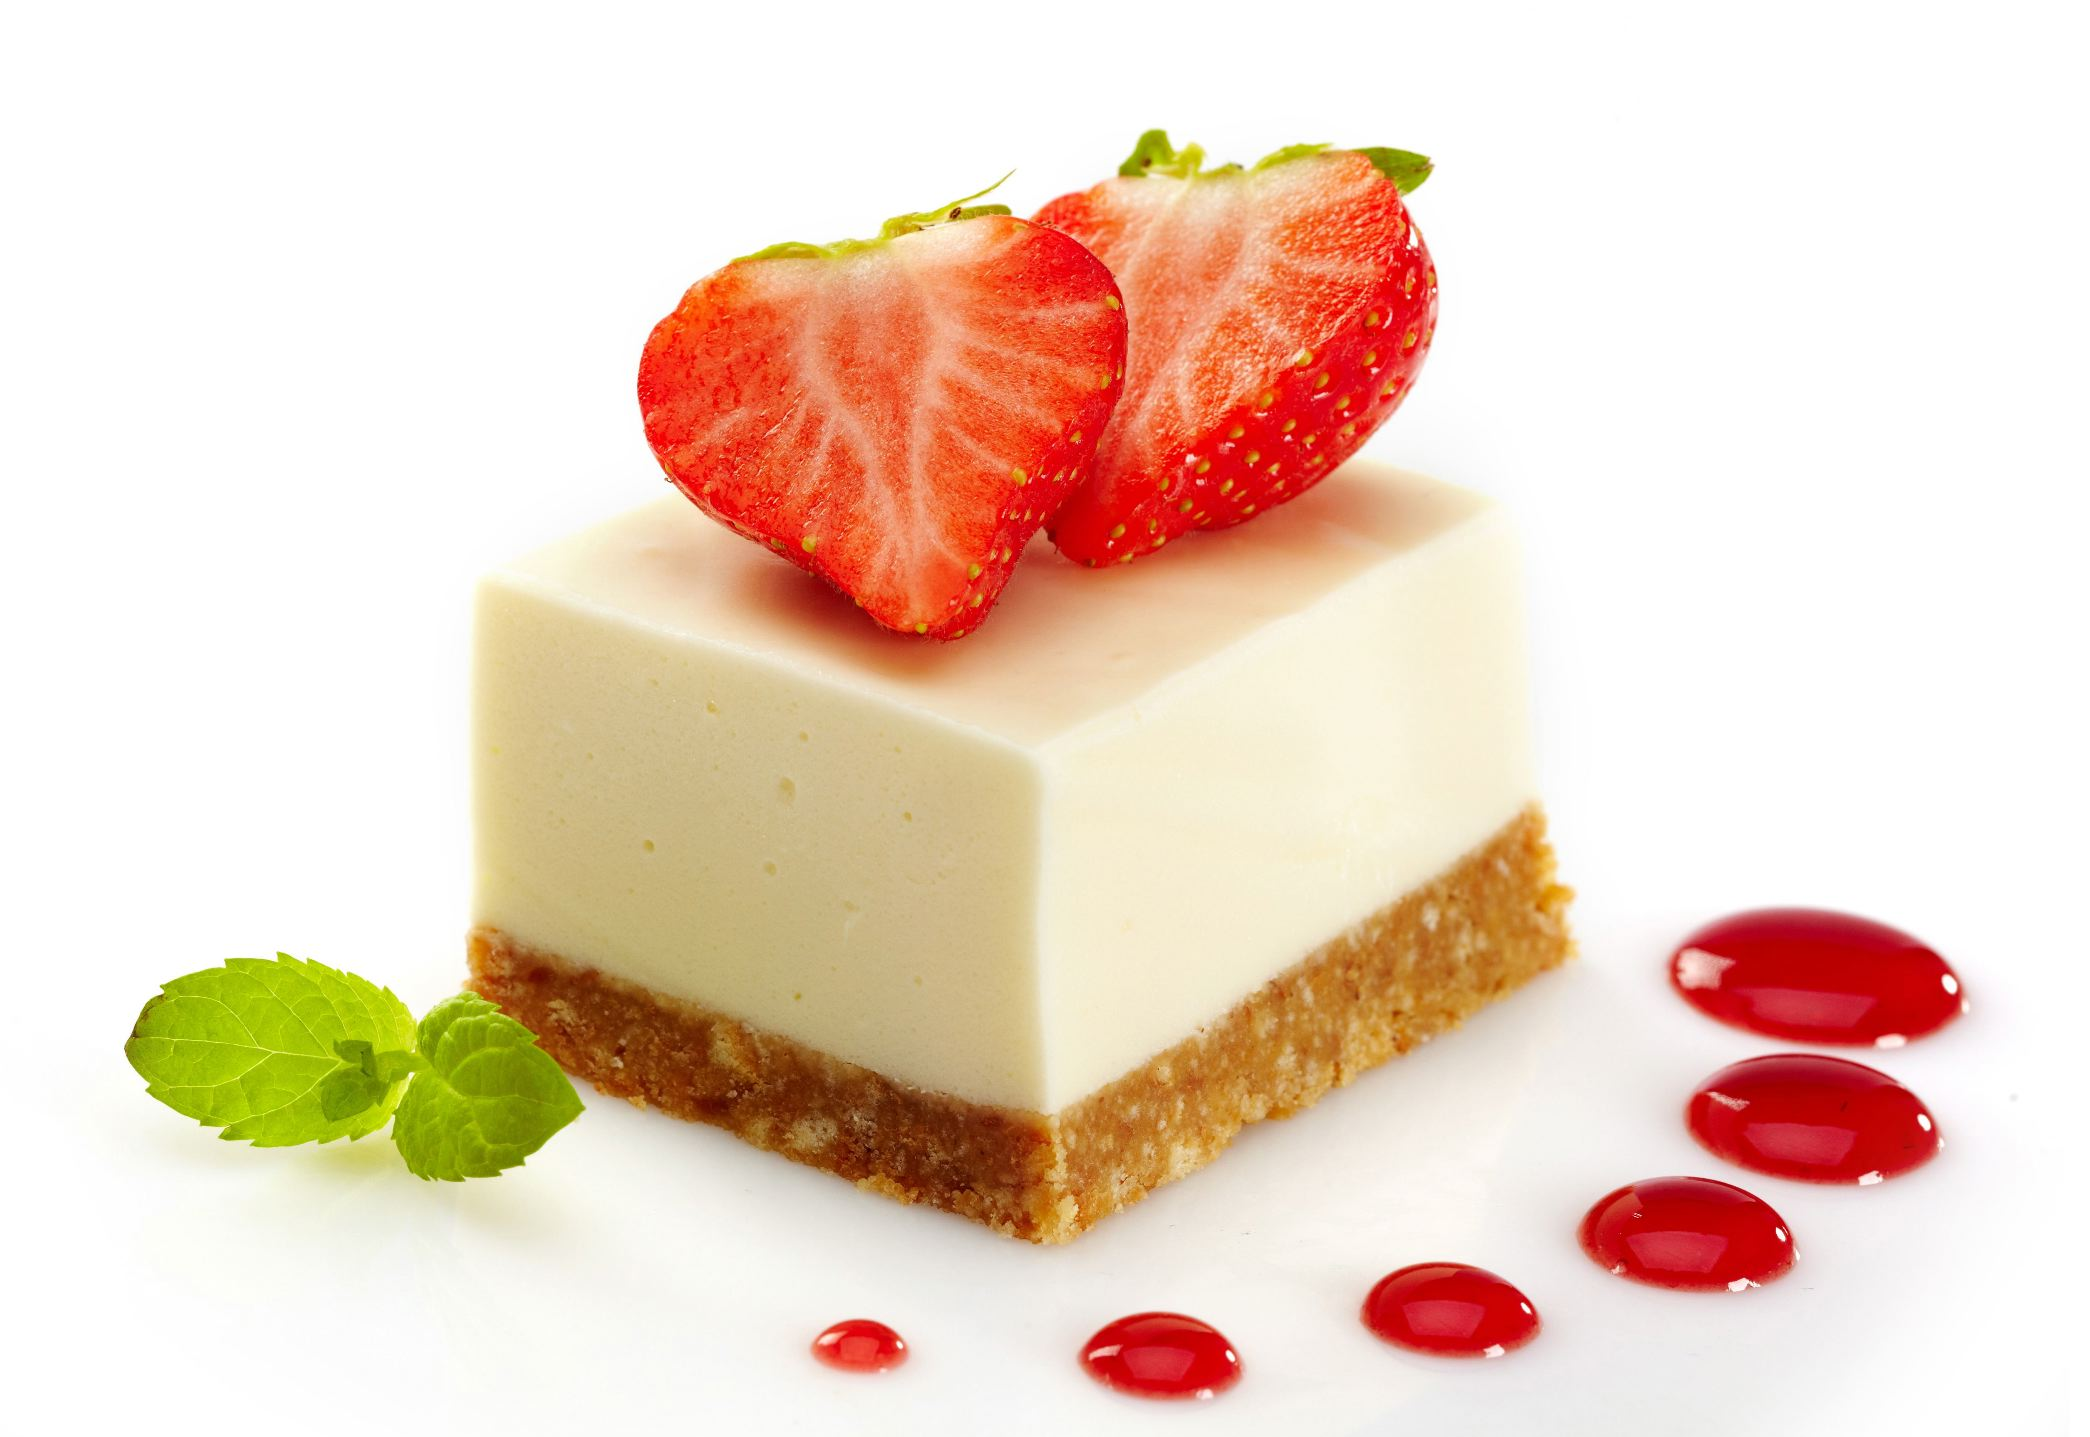 White-chocolate-strawberry-cheesecake1.jpg